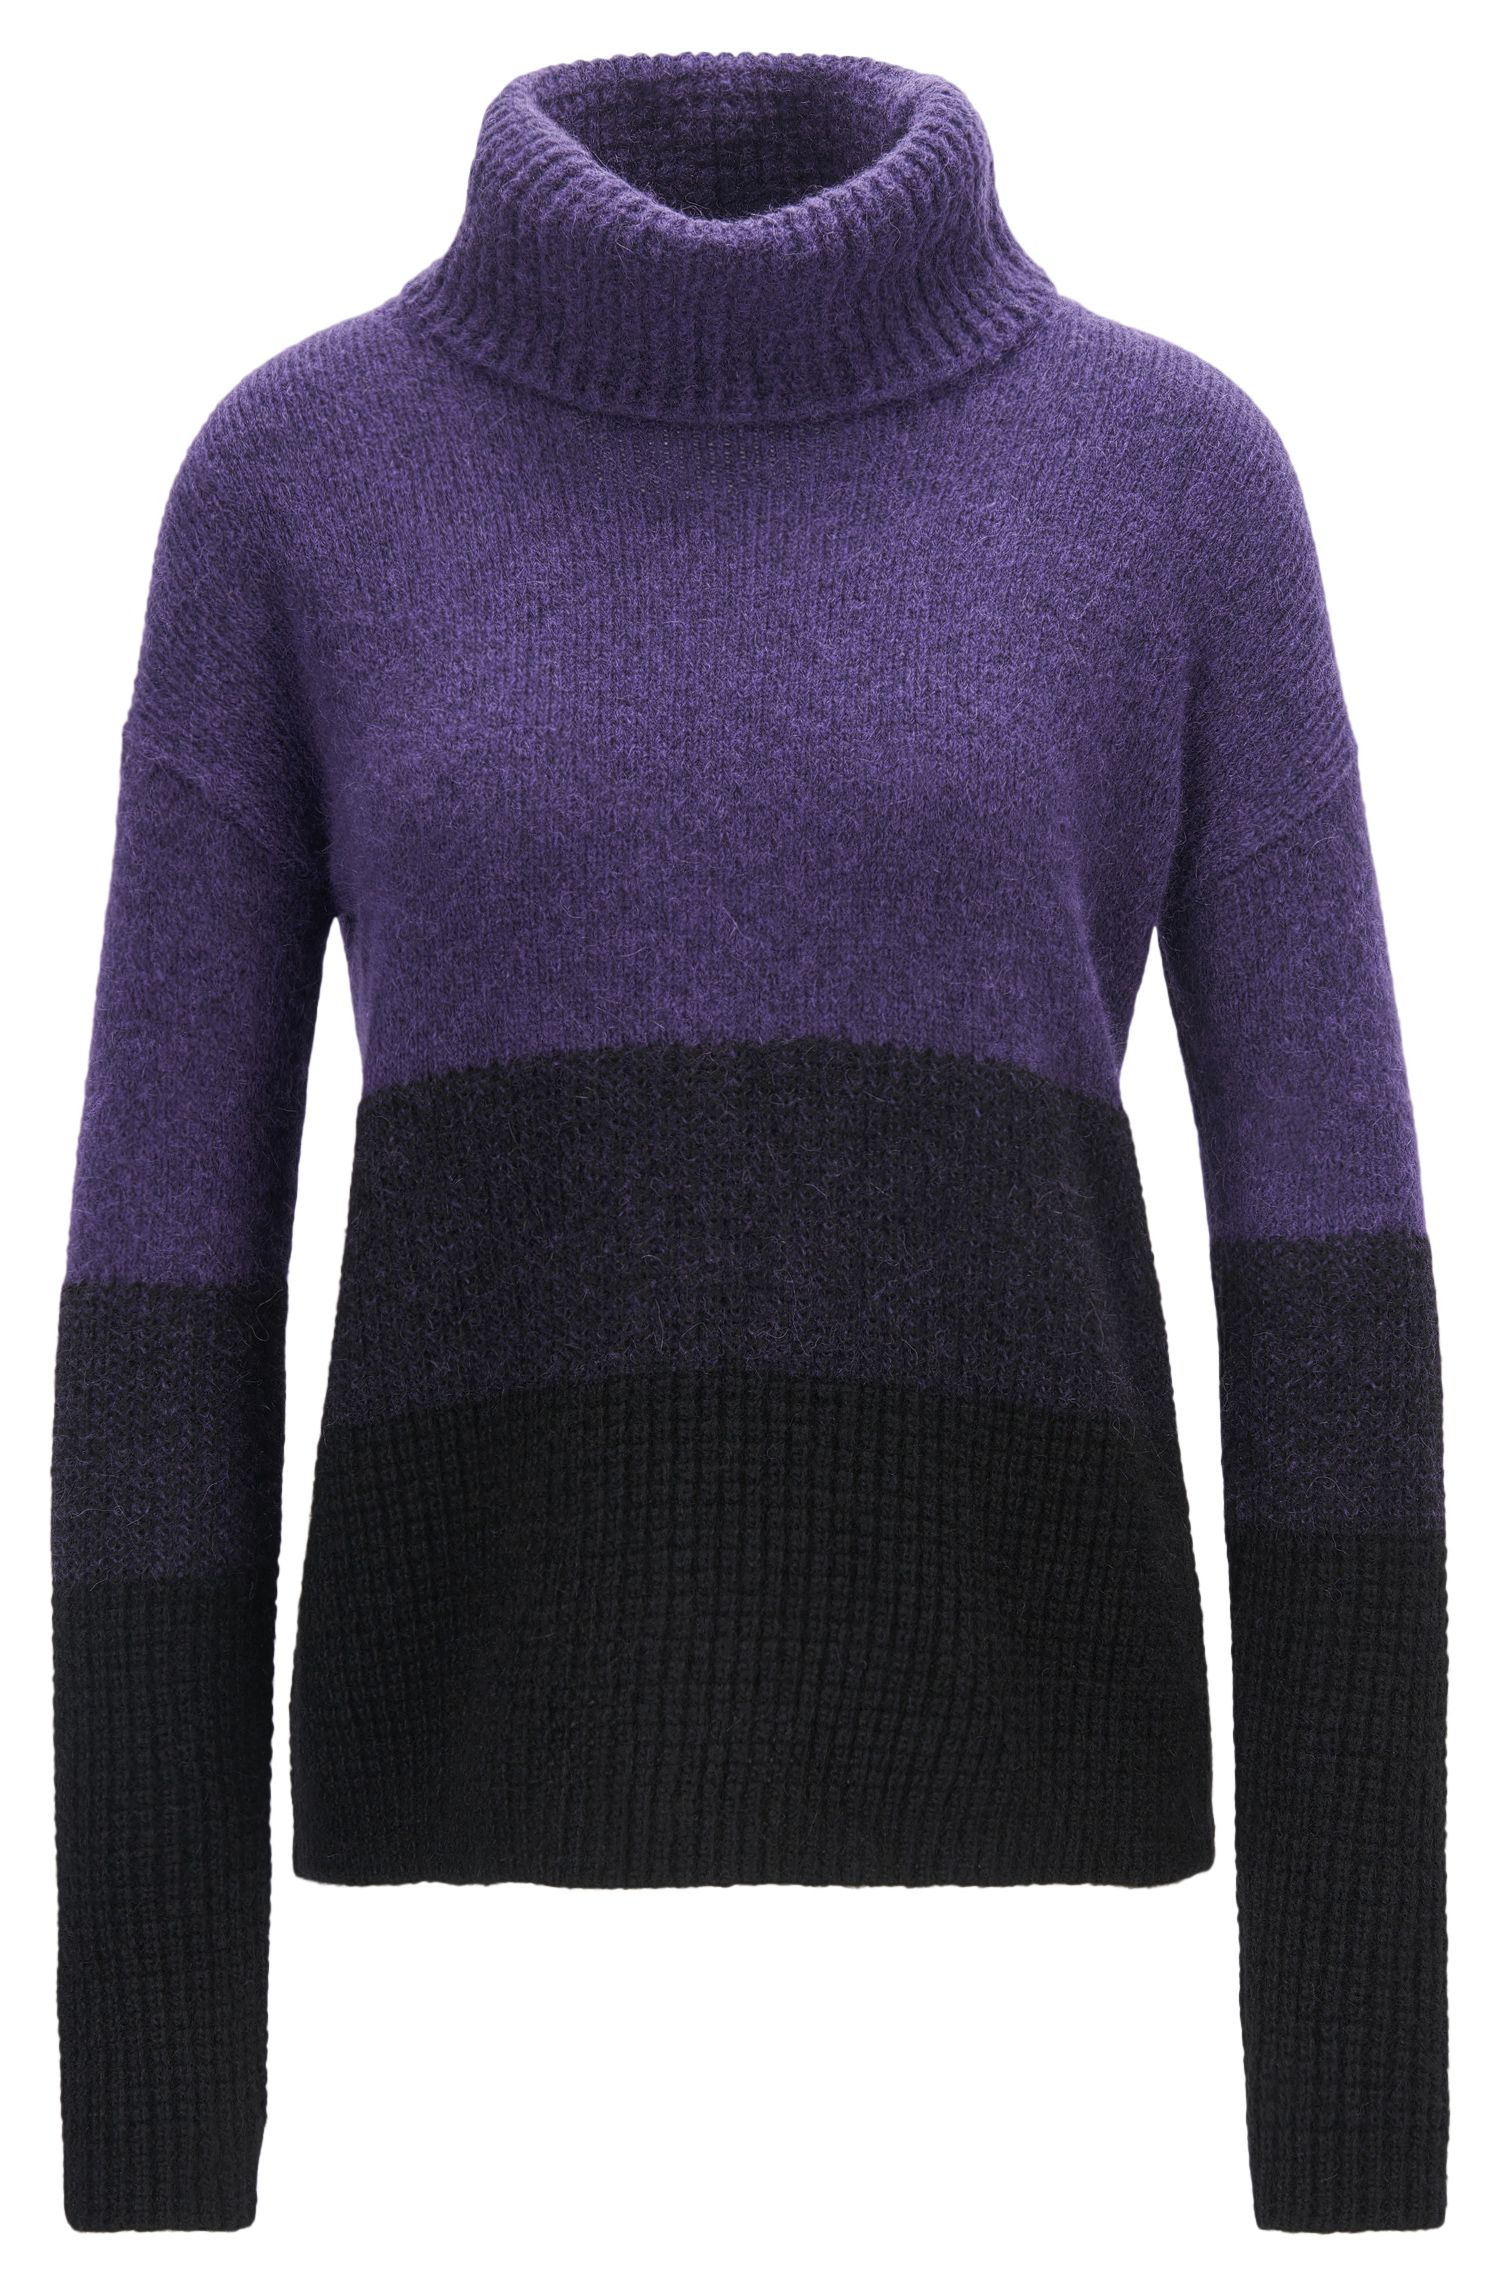 Colourblock roll-neck sweater in mixed knits